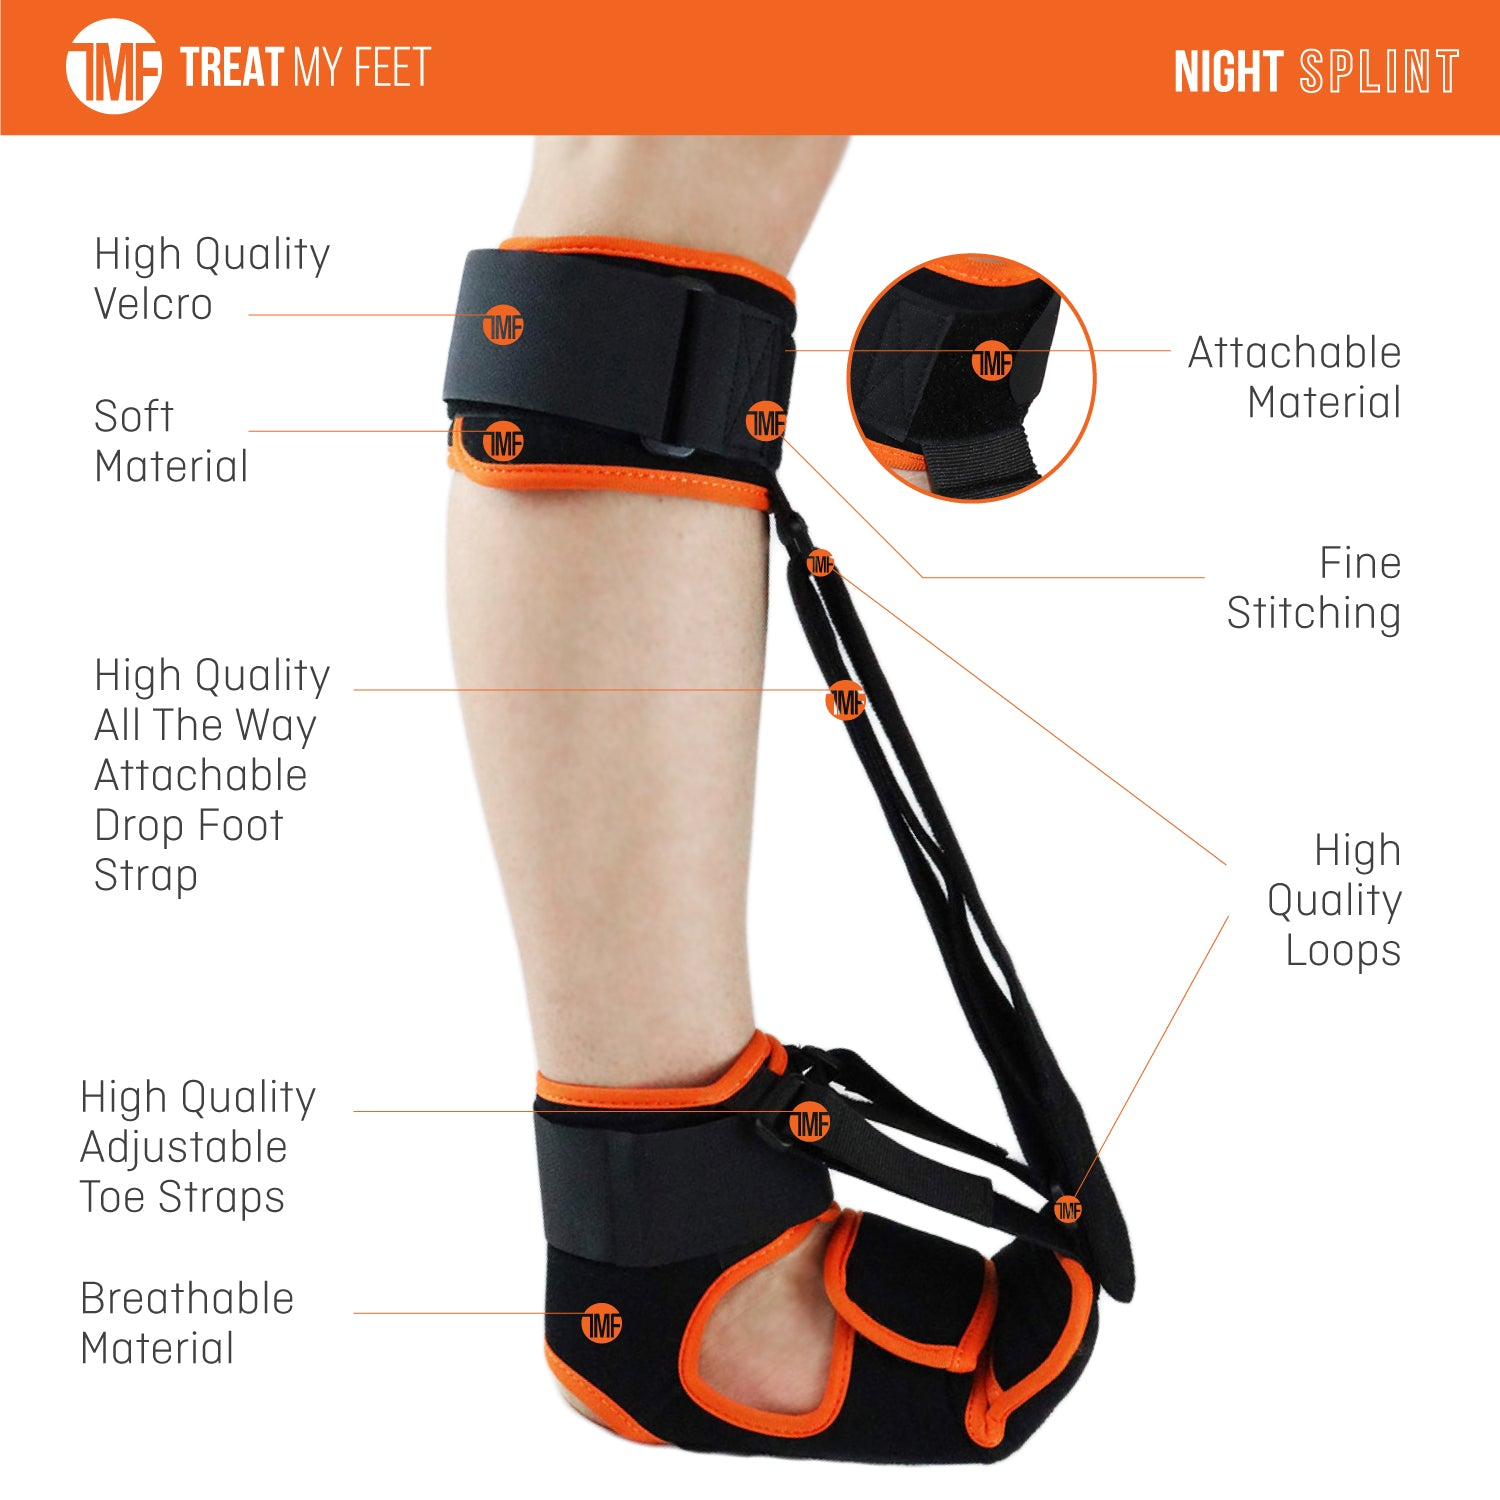 Plantar Fasciitis Night Splint - Feet Orthotics Support for Achilles Tendonitis & Pain